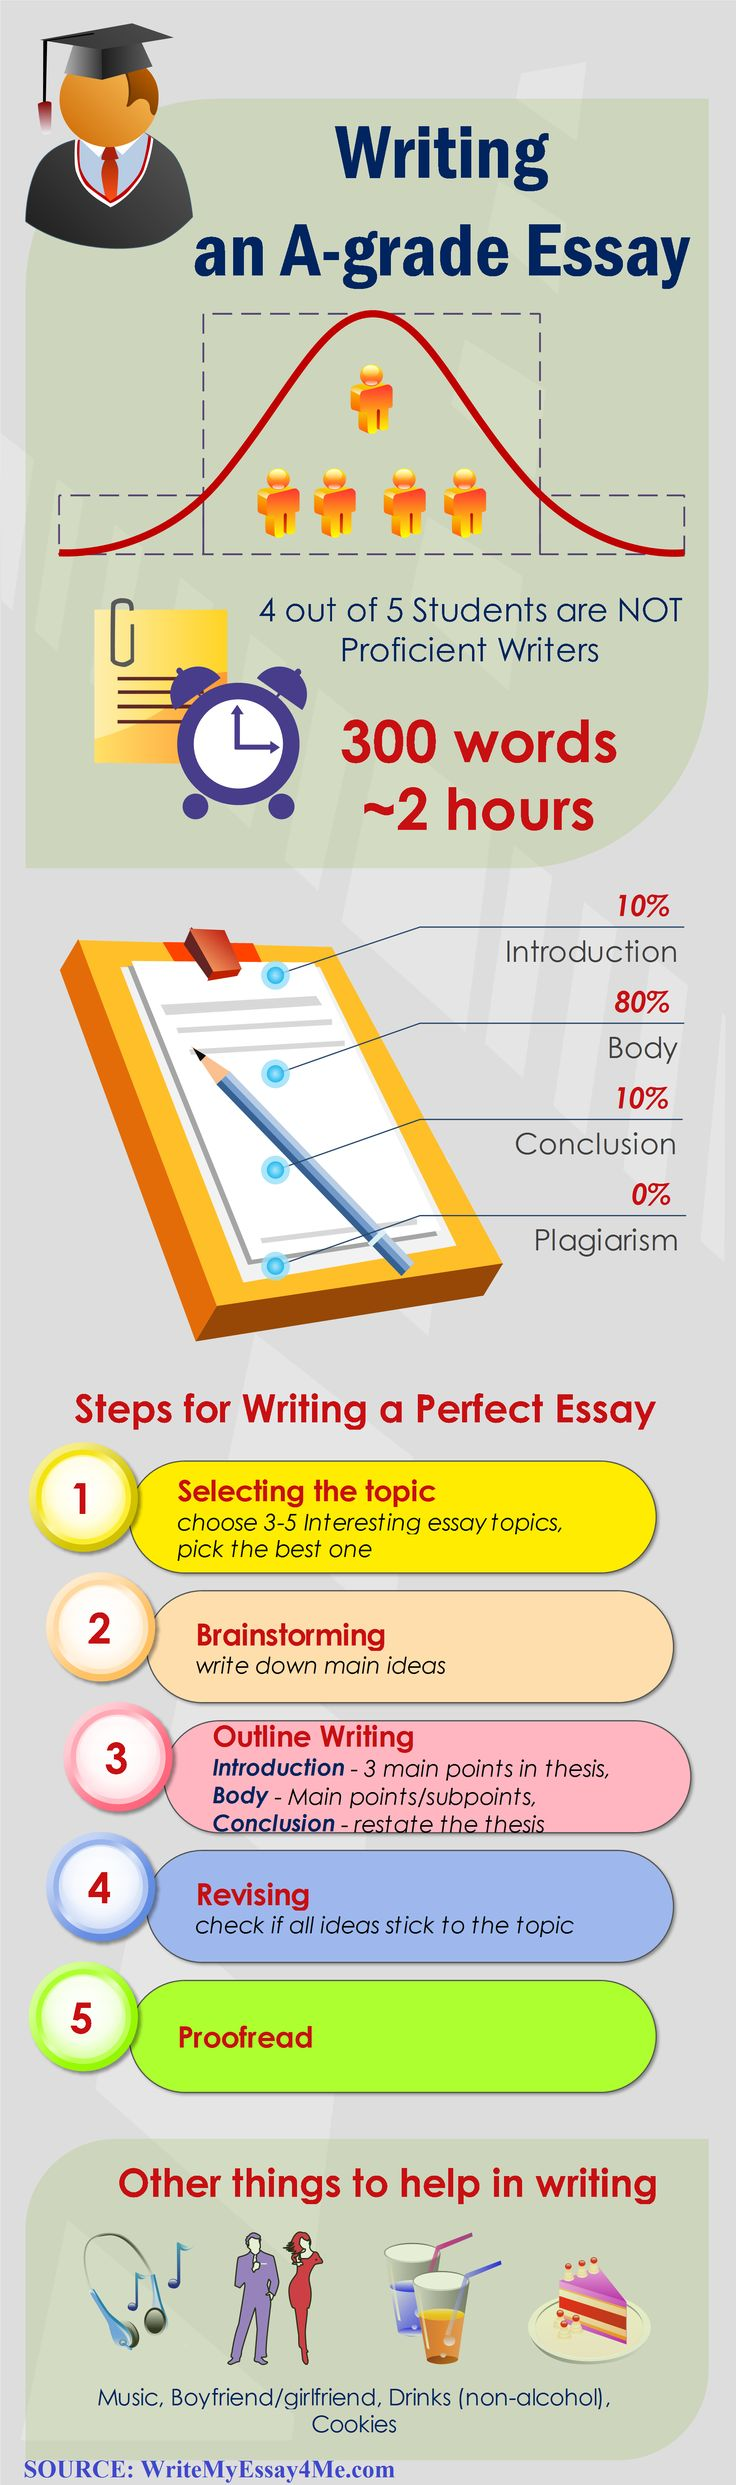 augusten burroughs essays online michael bierut    essays essay     Custom Essay Writing Services